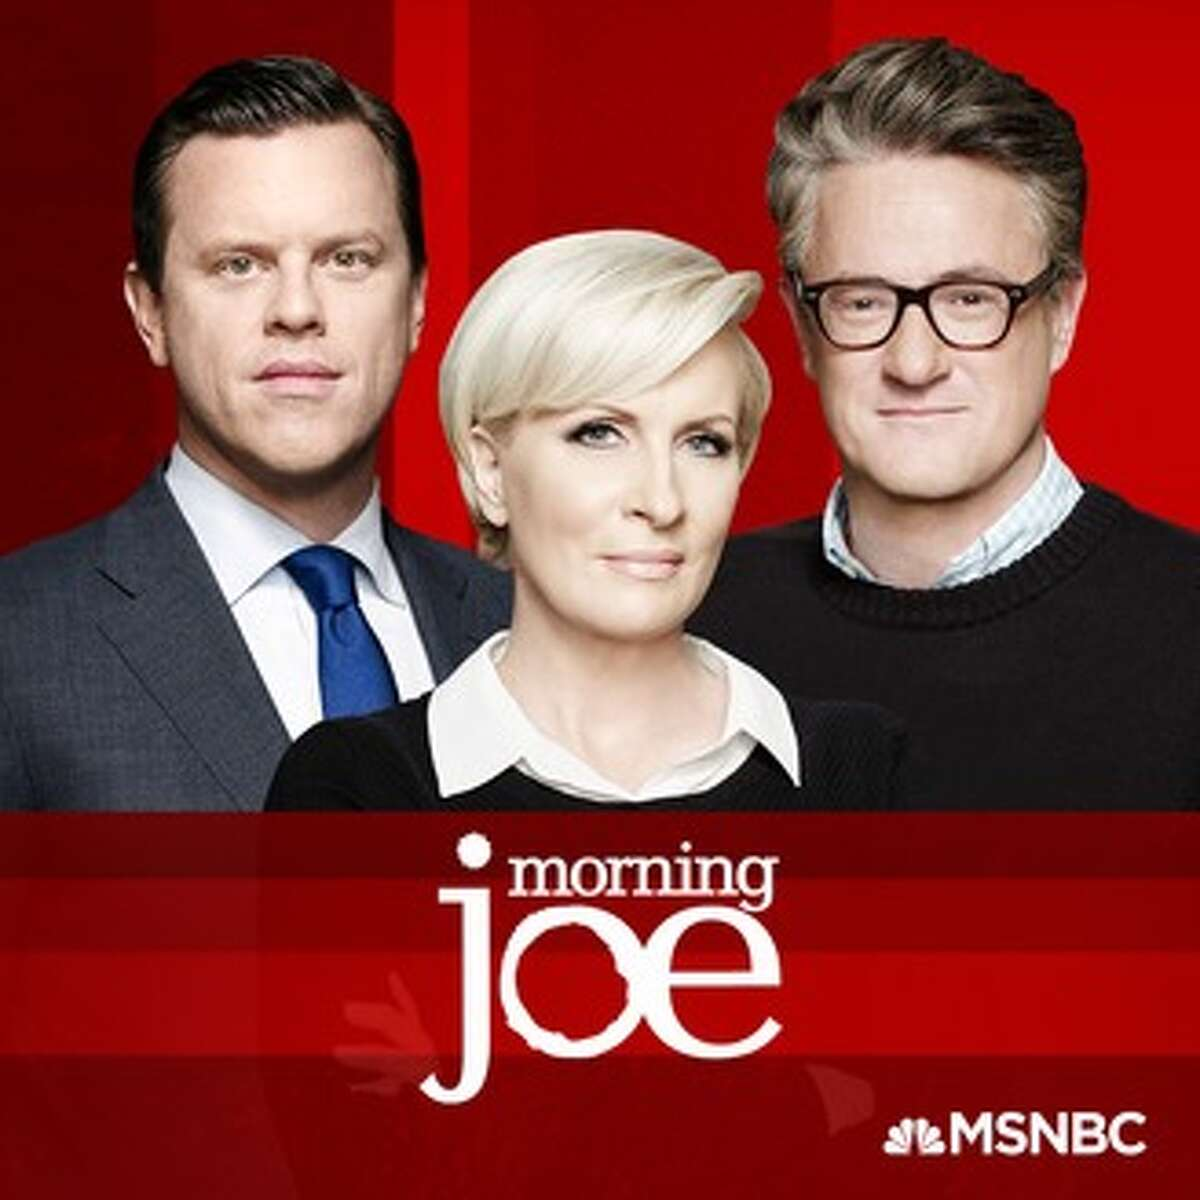 1. I may be a little late to the party but have recently started listening to podcasts. Morning Joe, Sunday Sit-down with Willie Geist and the Times Union Capitol Confidential are just a few that I like to listen to while driving through the 108th AD and of course while I mow the lawn each week.